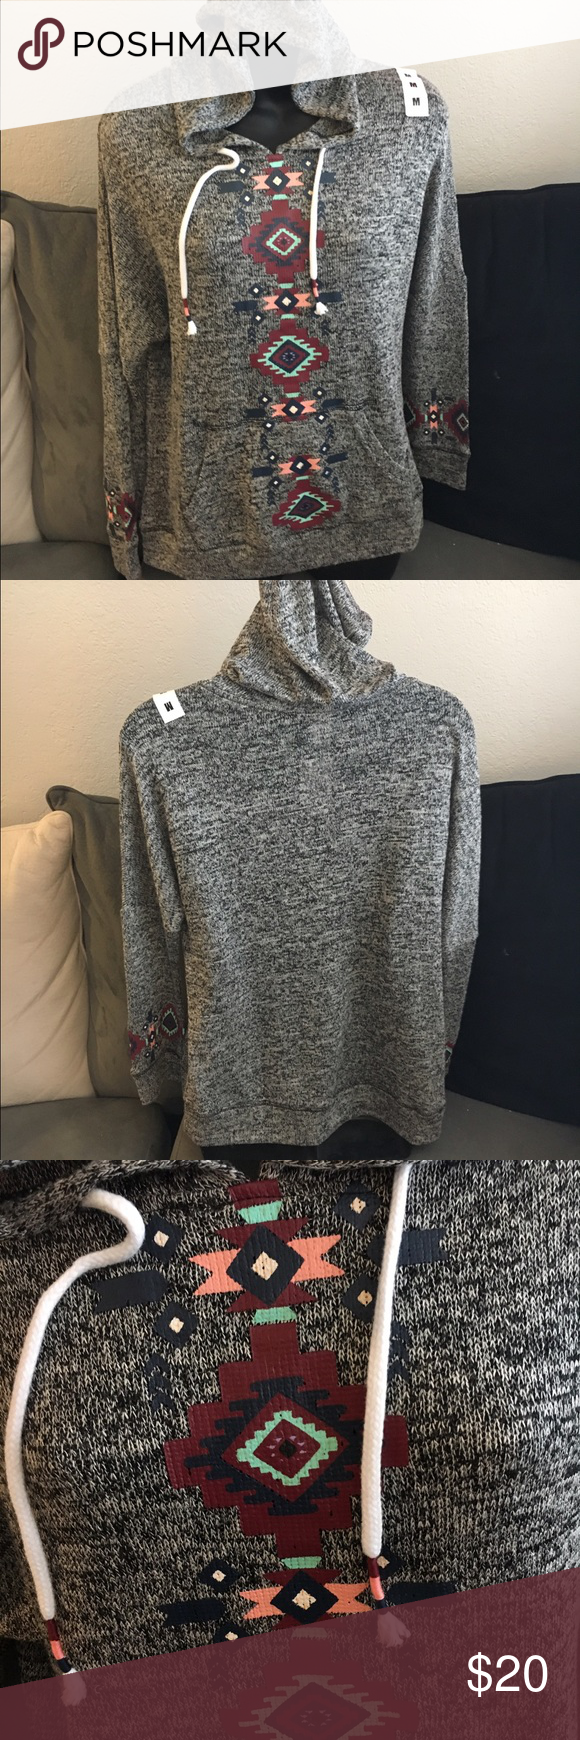 Zumiez aztec hoodie nwt size medium very comfy and cute sweaters